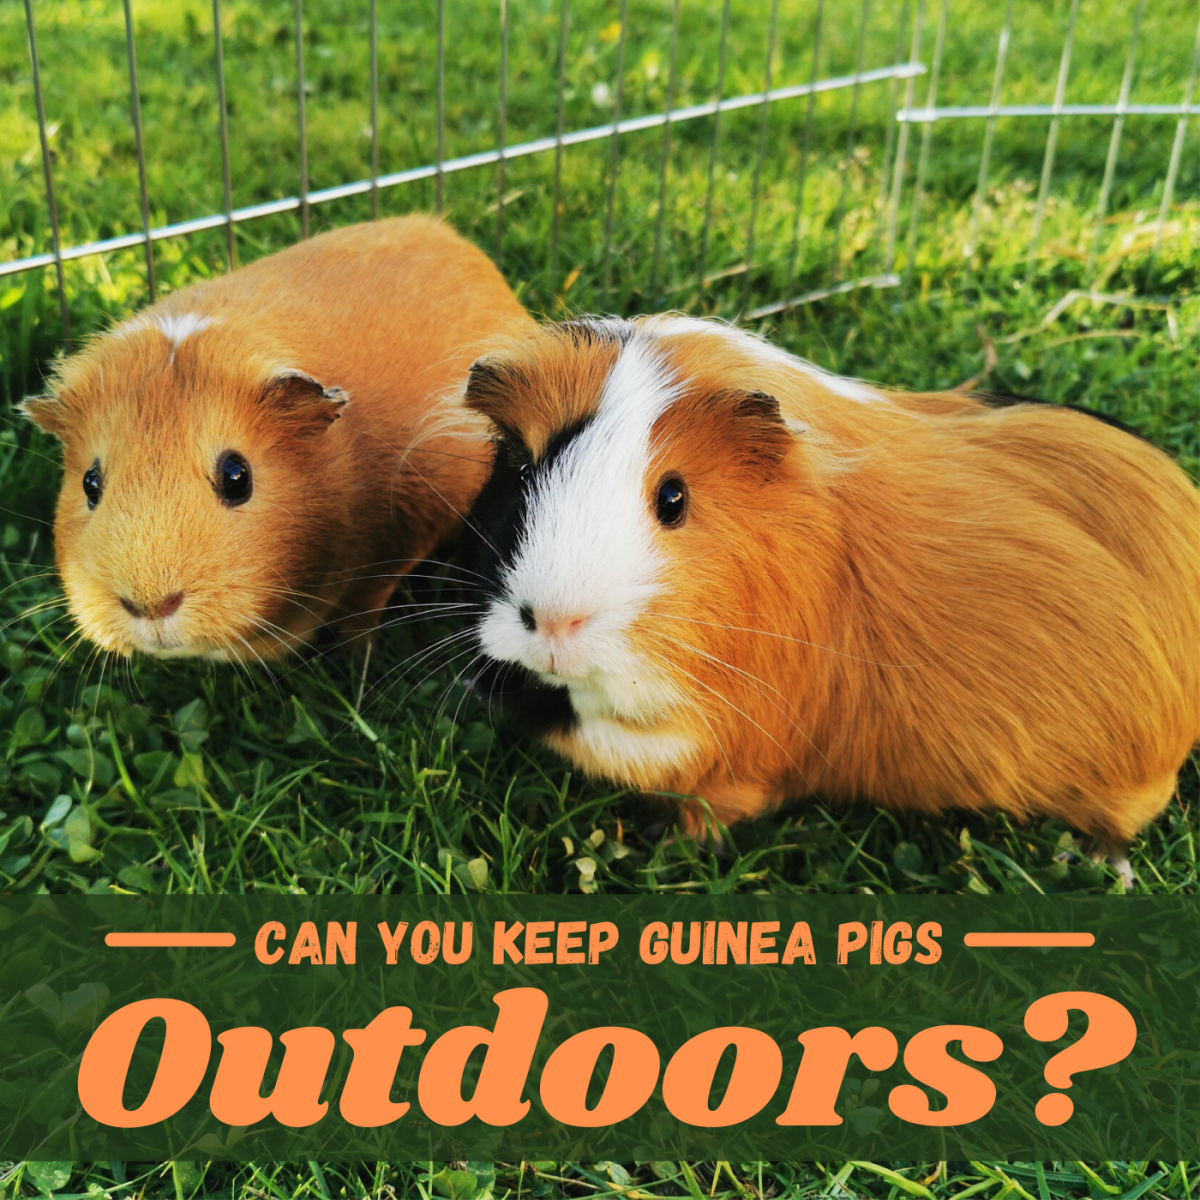 You can keep your cavies outdoors if you take extra precautions to keep them safe and healthy.